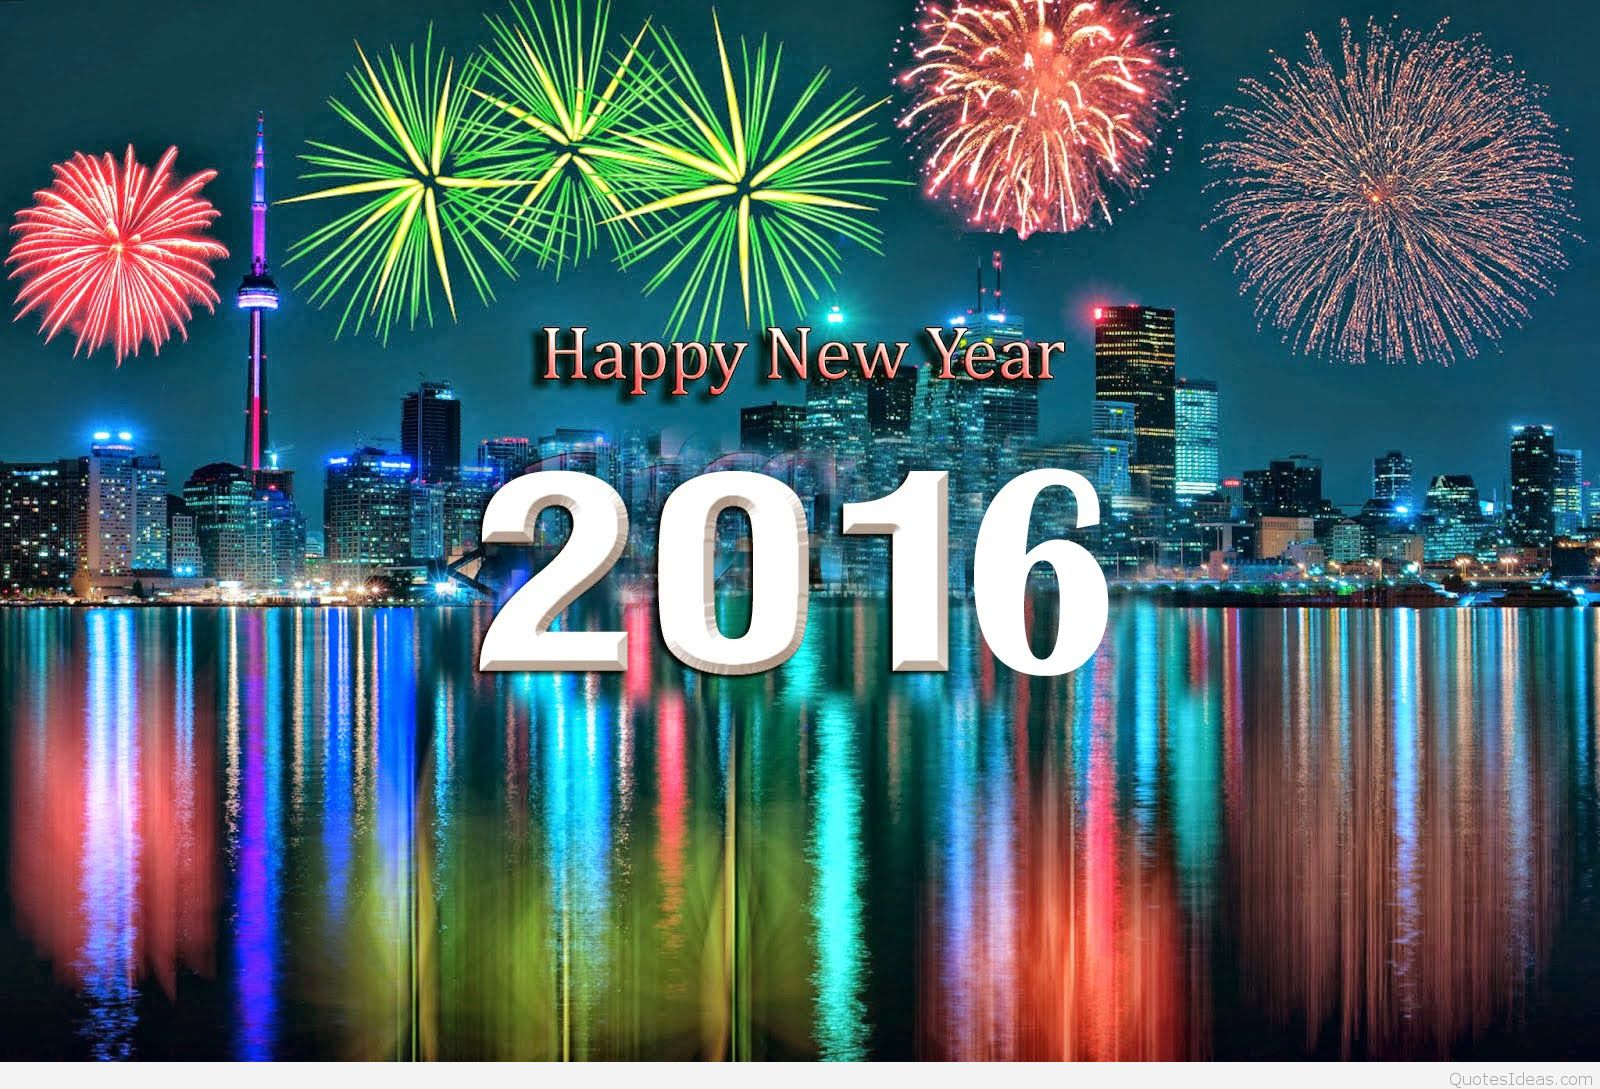 Happy new year photos wallpapers sayings 2016 1600x1089